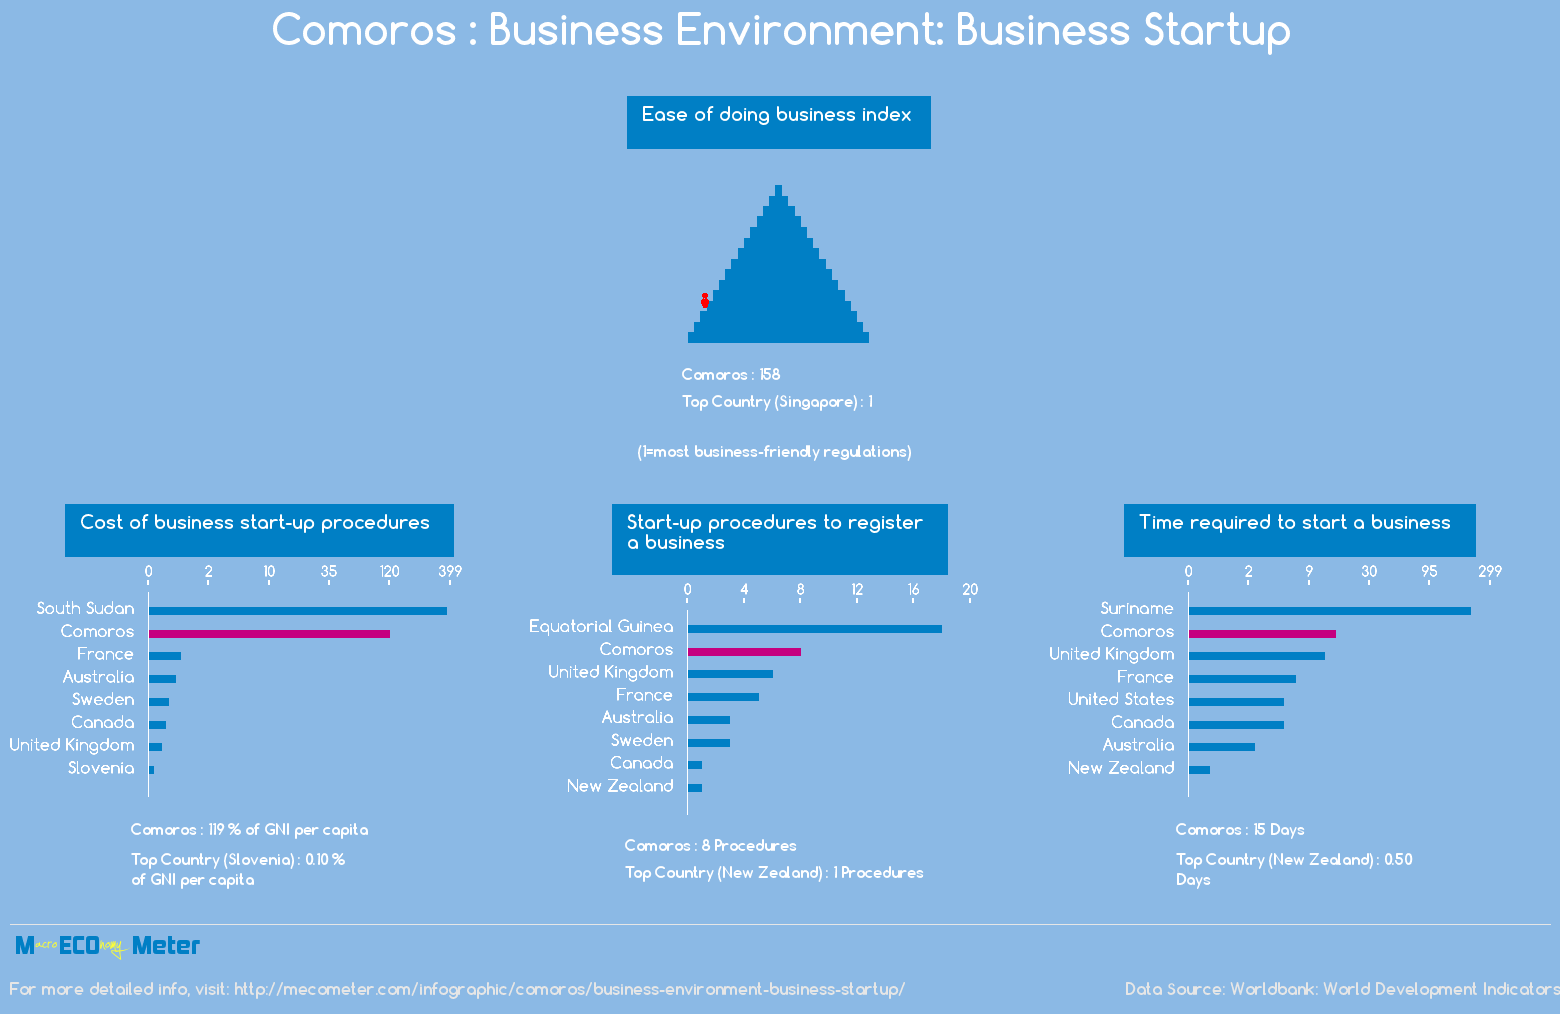 Comoros : Business Environment: Business Startup